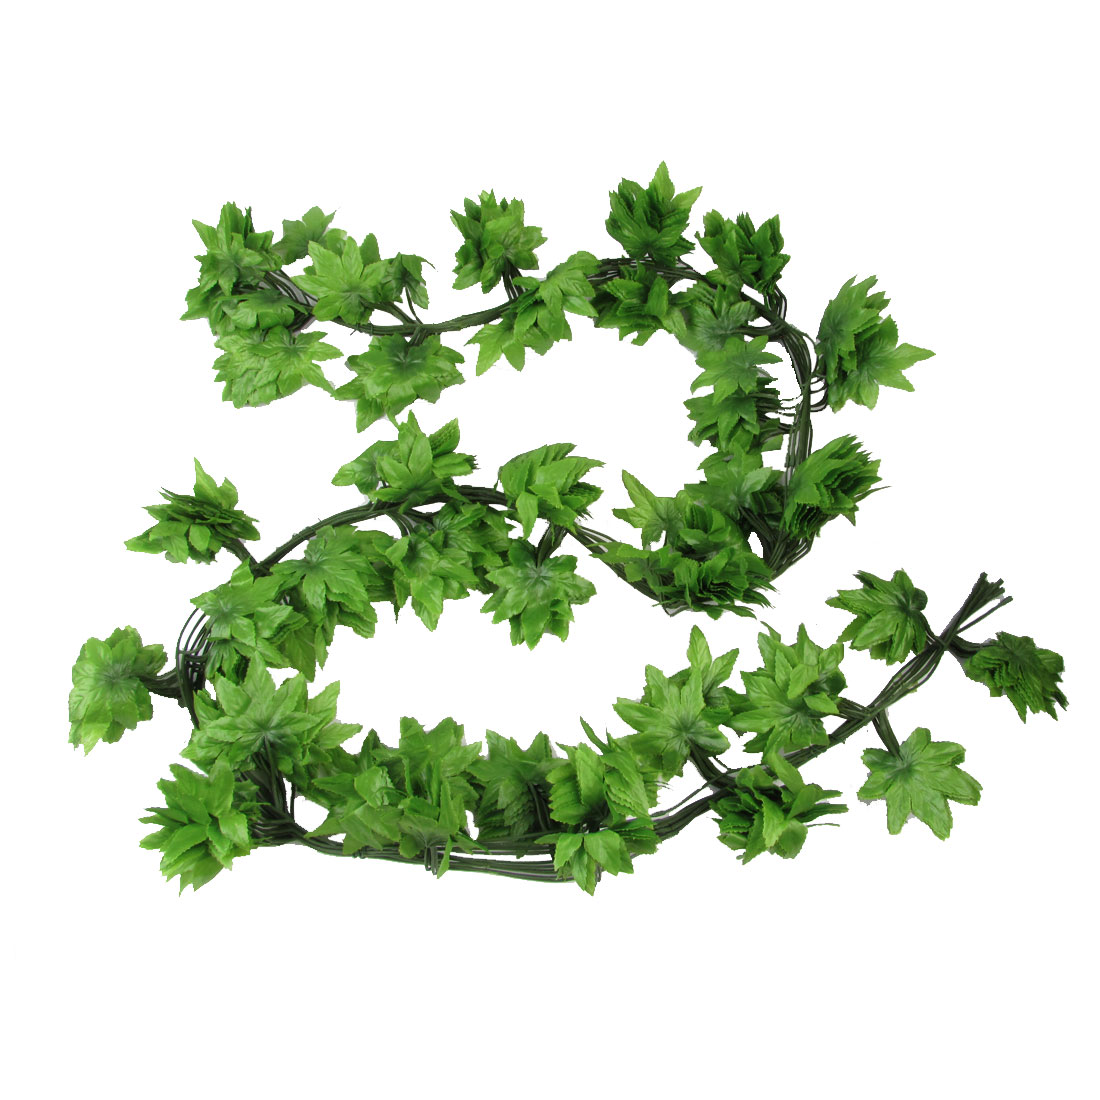 Party House Decoration Green Manmade Maple Leaves Vine 2 Meters Long